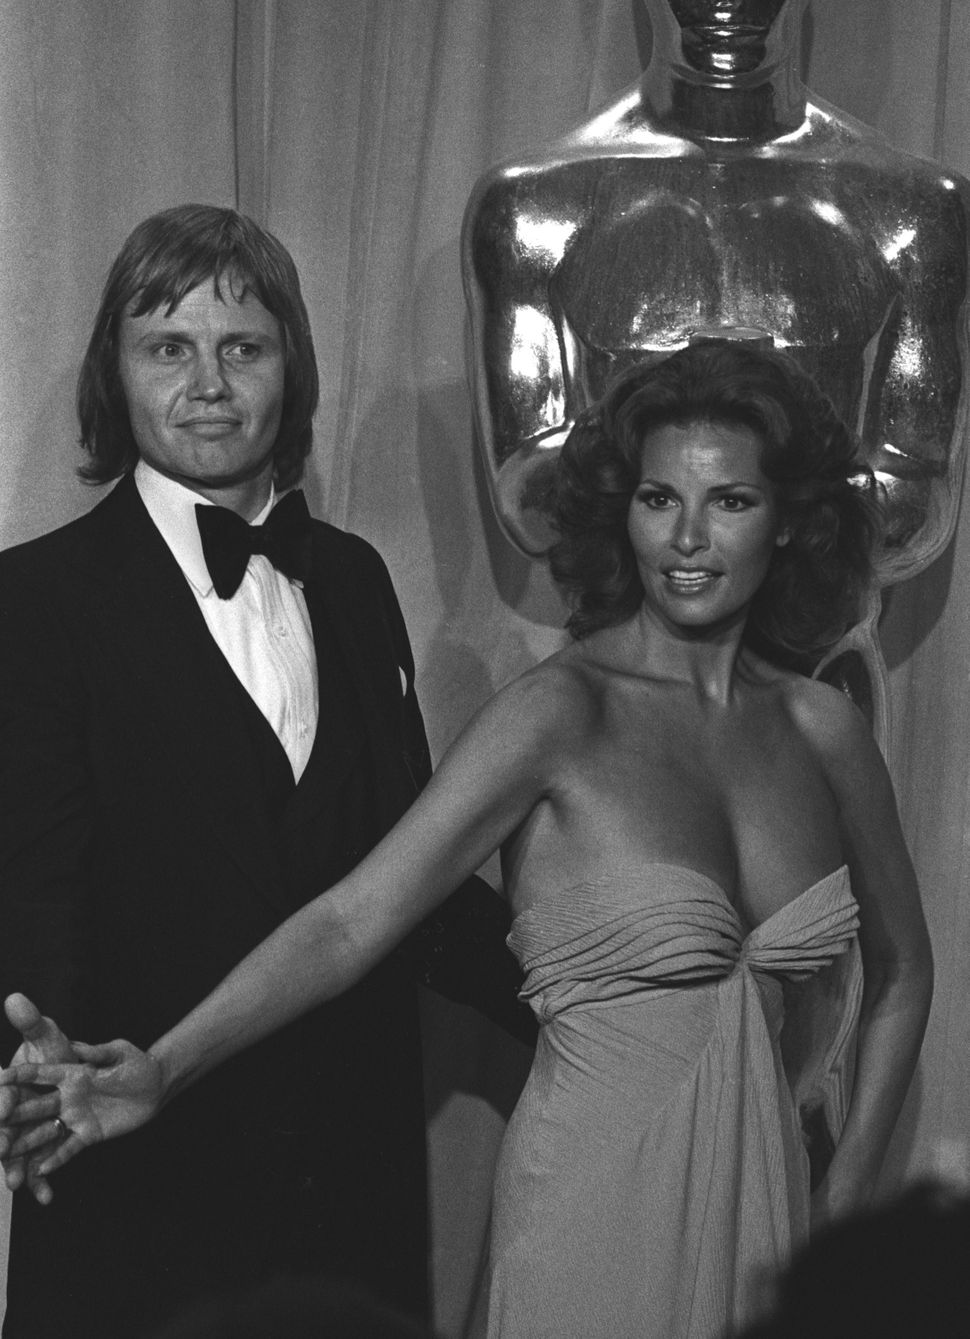 Jon Voight and Raquel Welch at the 47th annual Academy Awards in 1975.